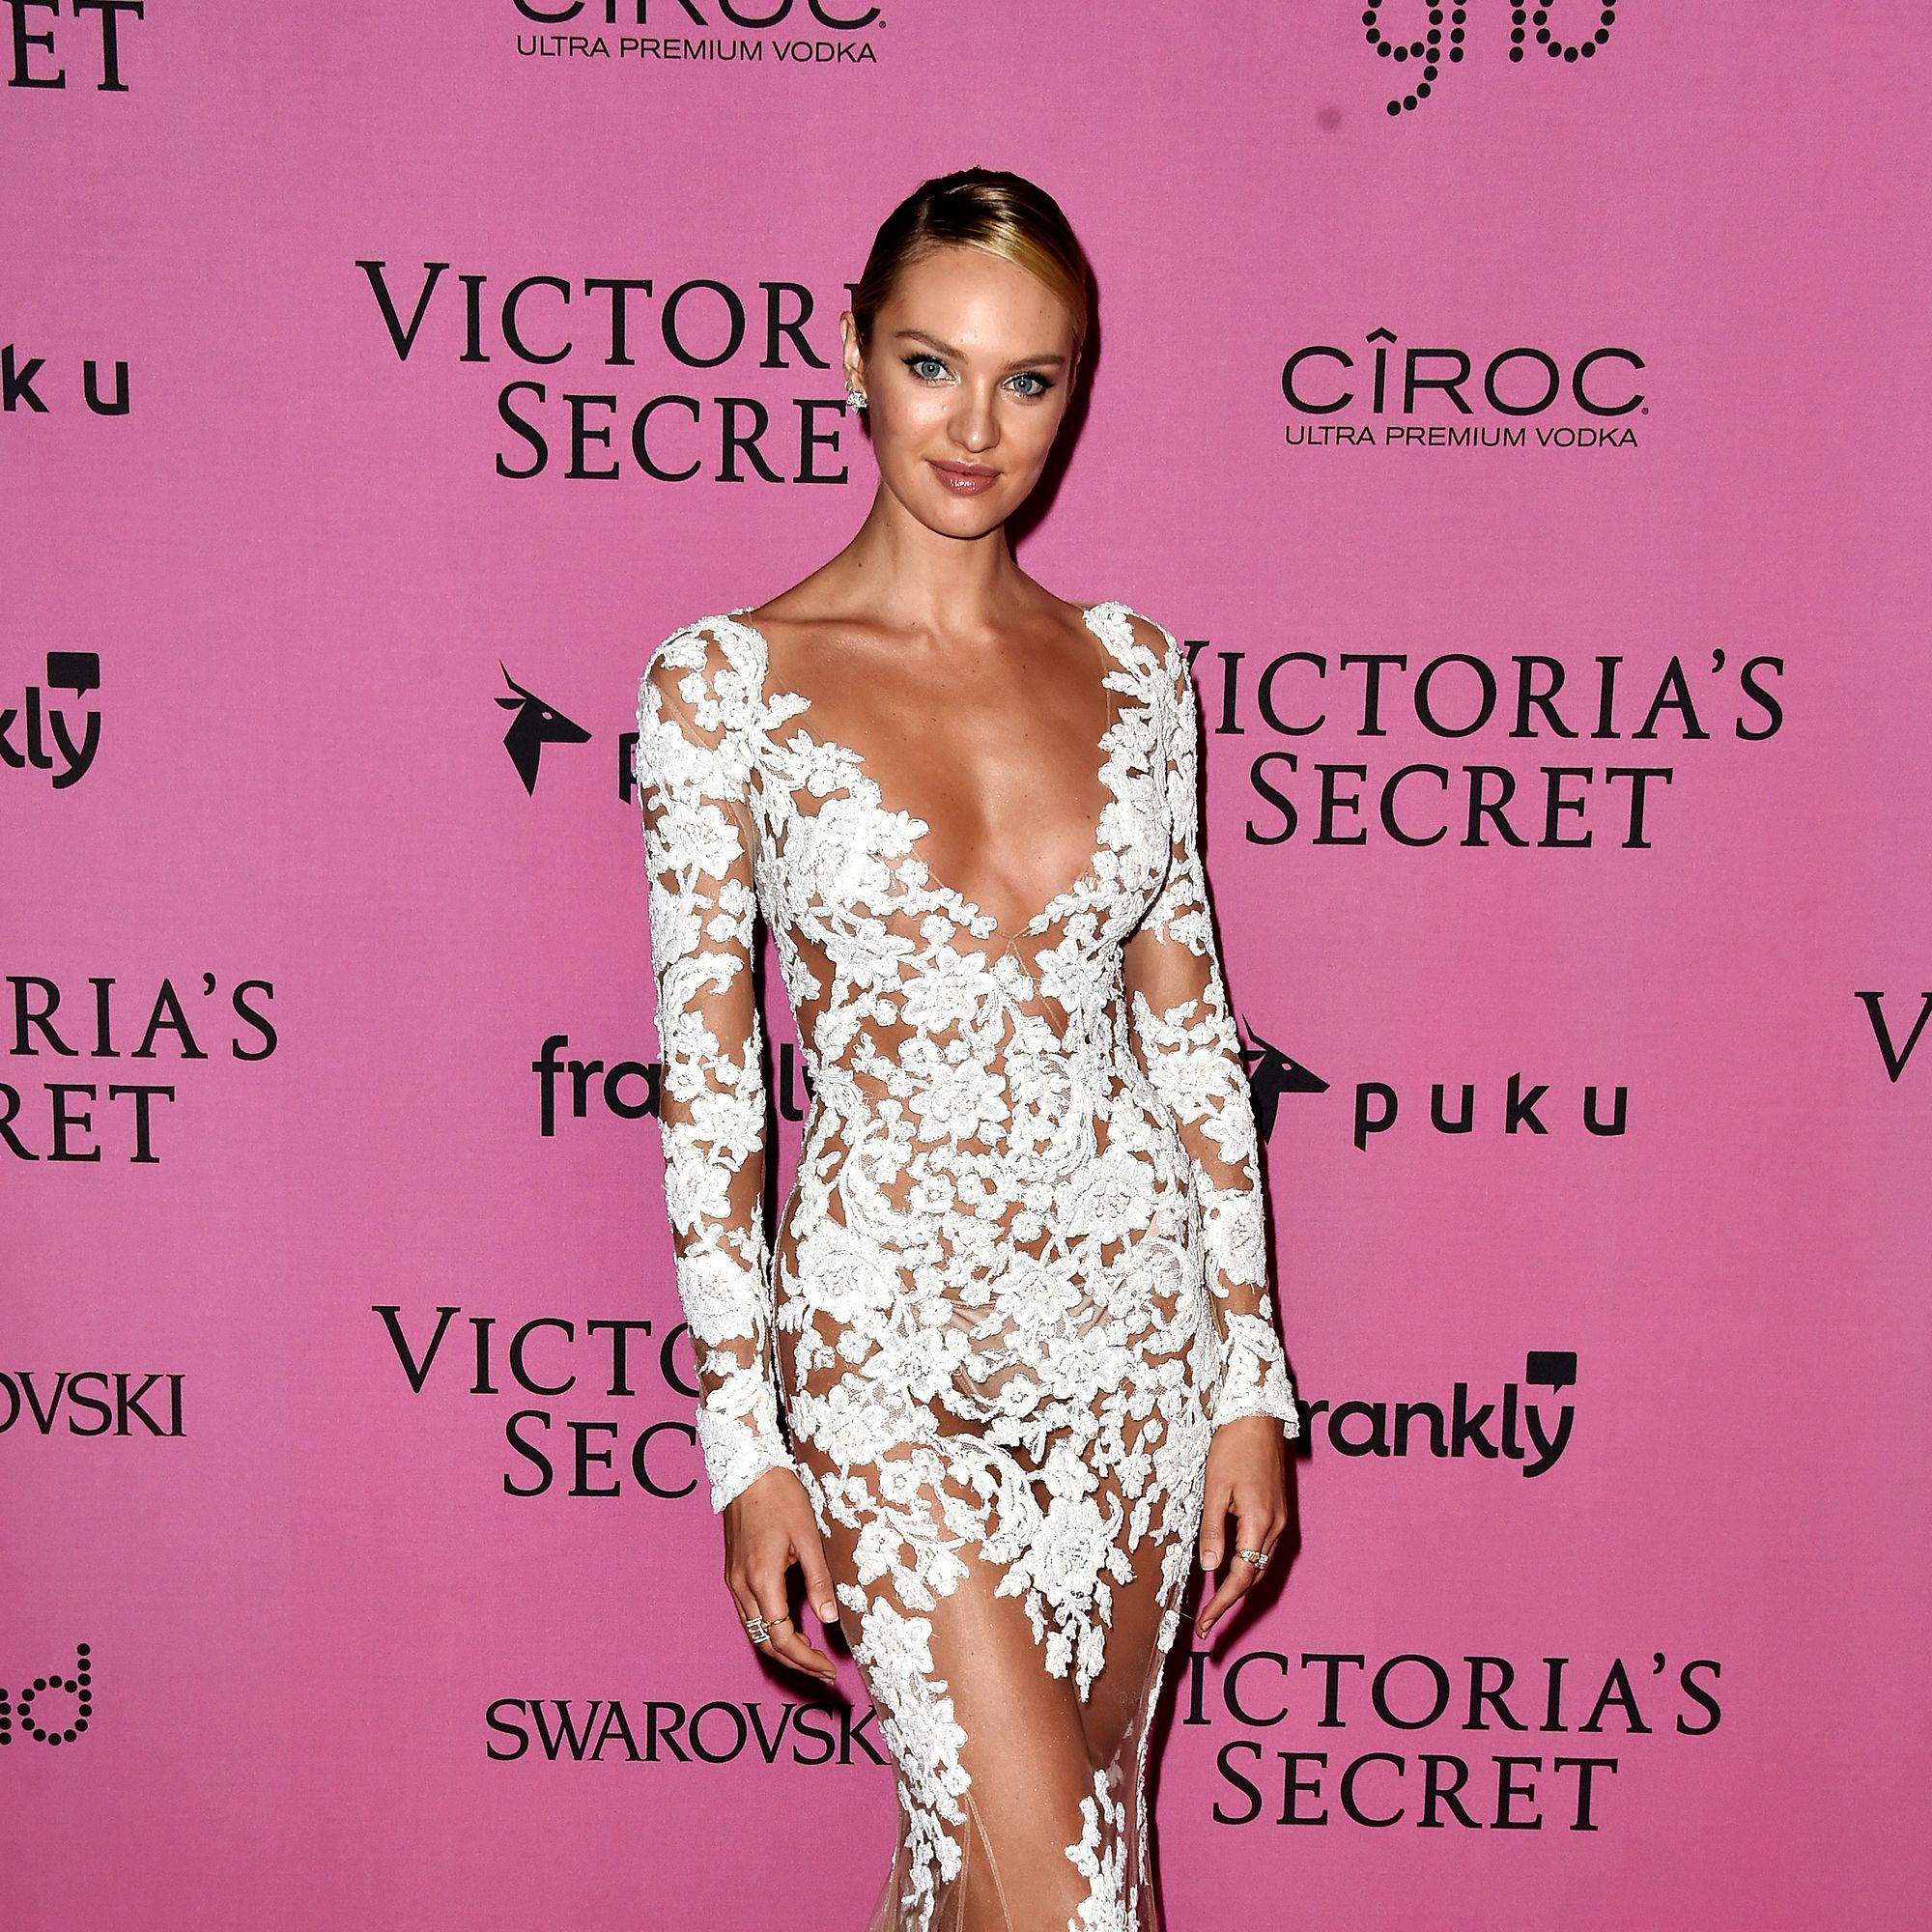 LONDON, ENGLAND - DECEMBER 02:  Model Candice Swanepoel attends the after party for the annual Victoria's Secret fashion show at Earls Court on December 2, 2014 in London, England.  (Photo by Pascal Le Segretain/Getty Images)